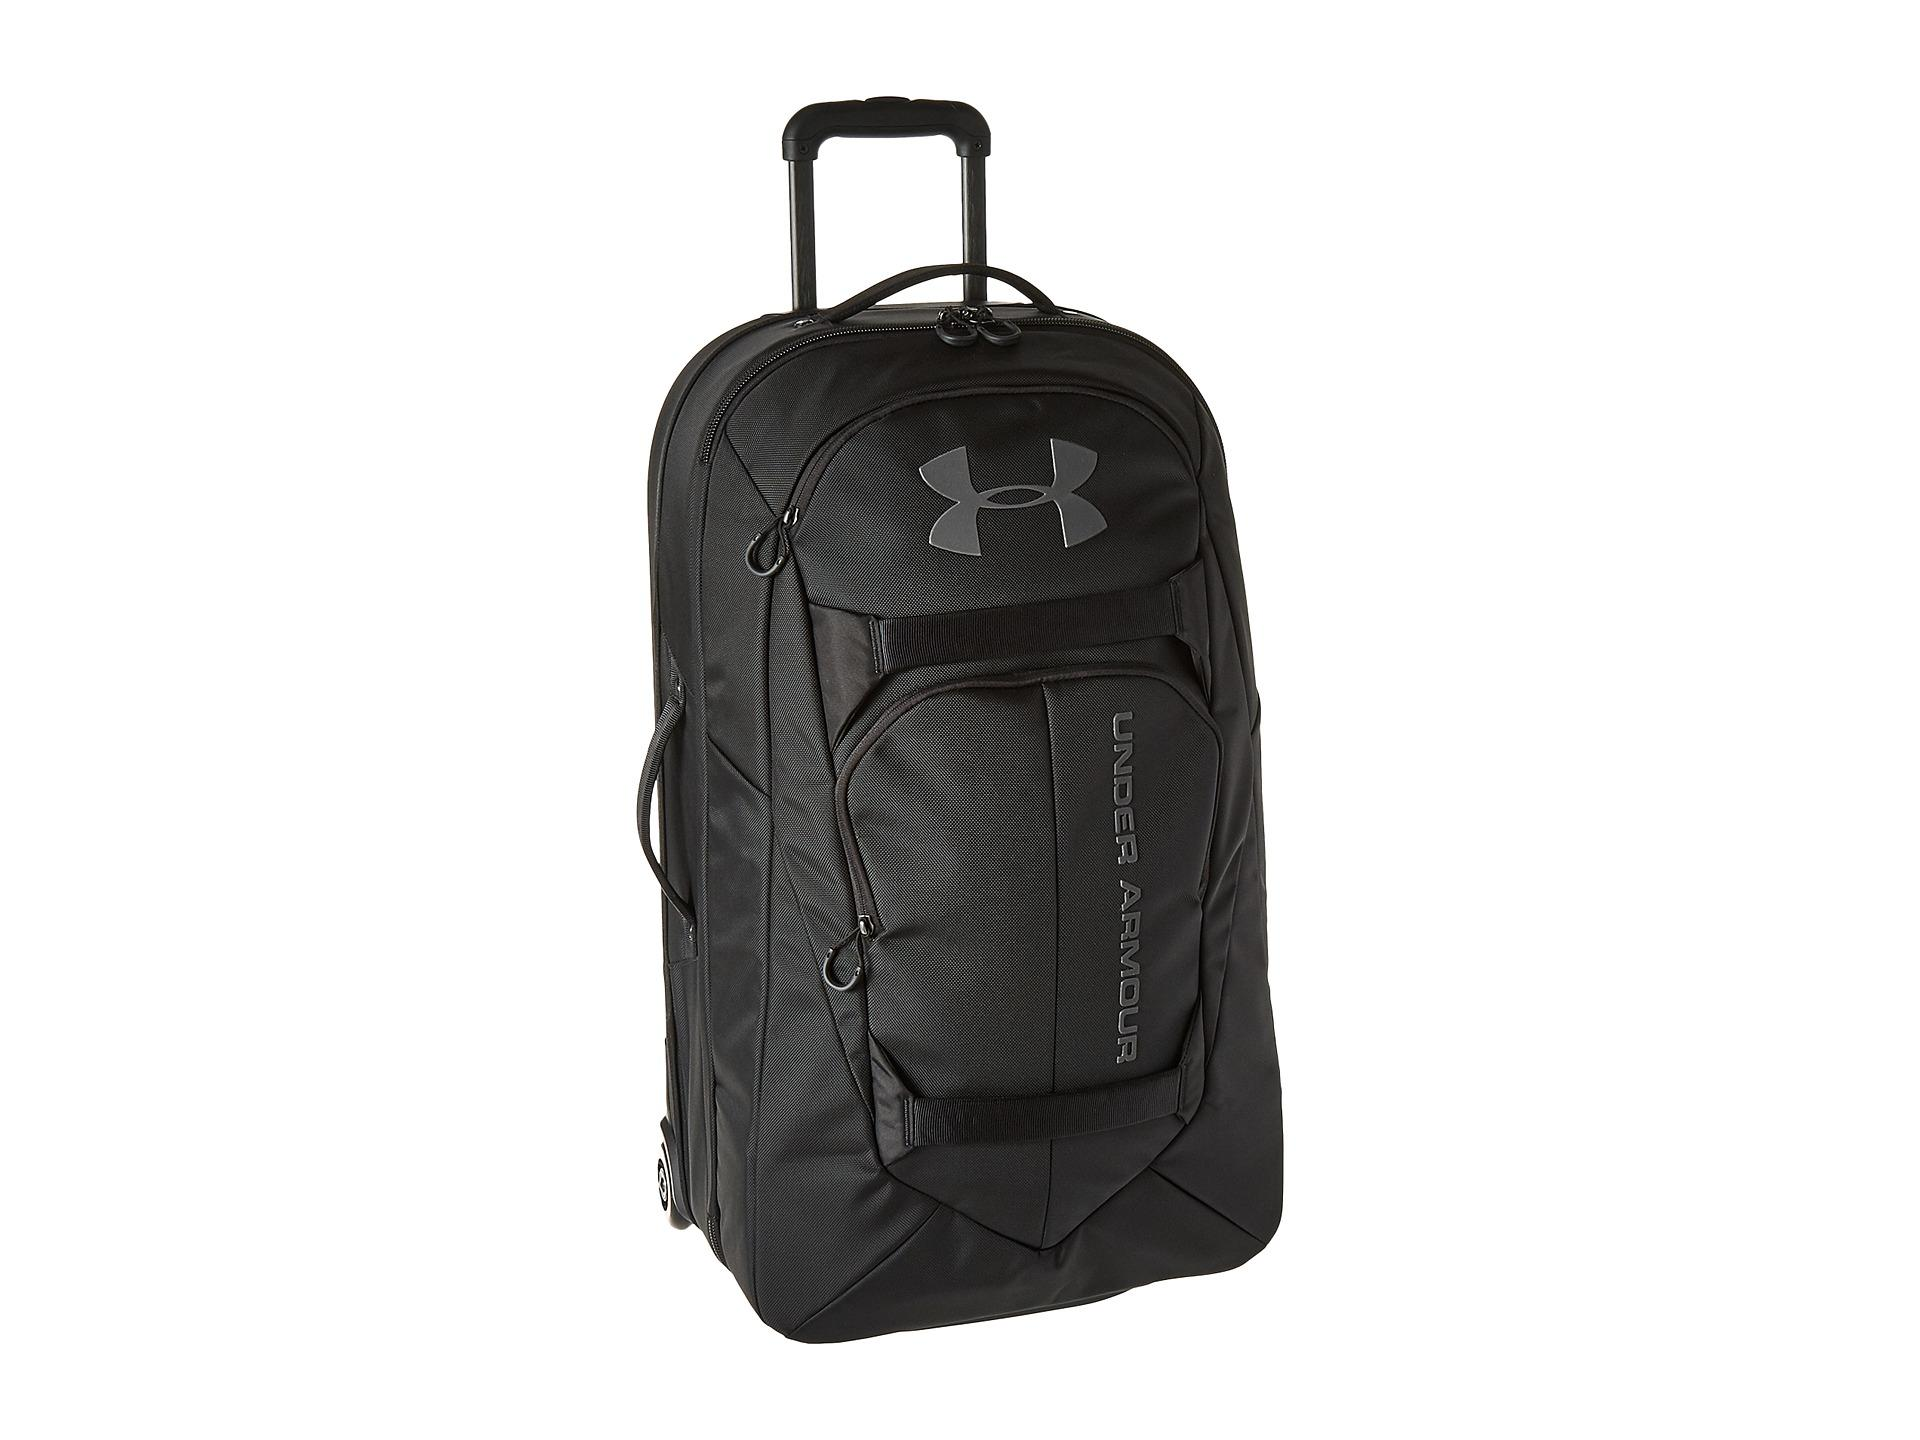 Lyst - Under Armour Ua At Checked Rolling Bag in Black for Men 38caf333cec0e